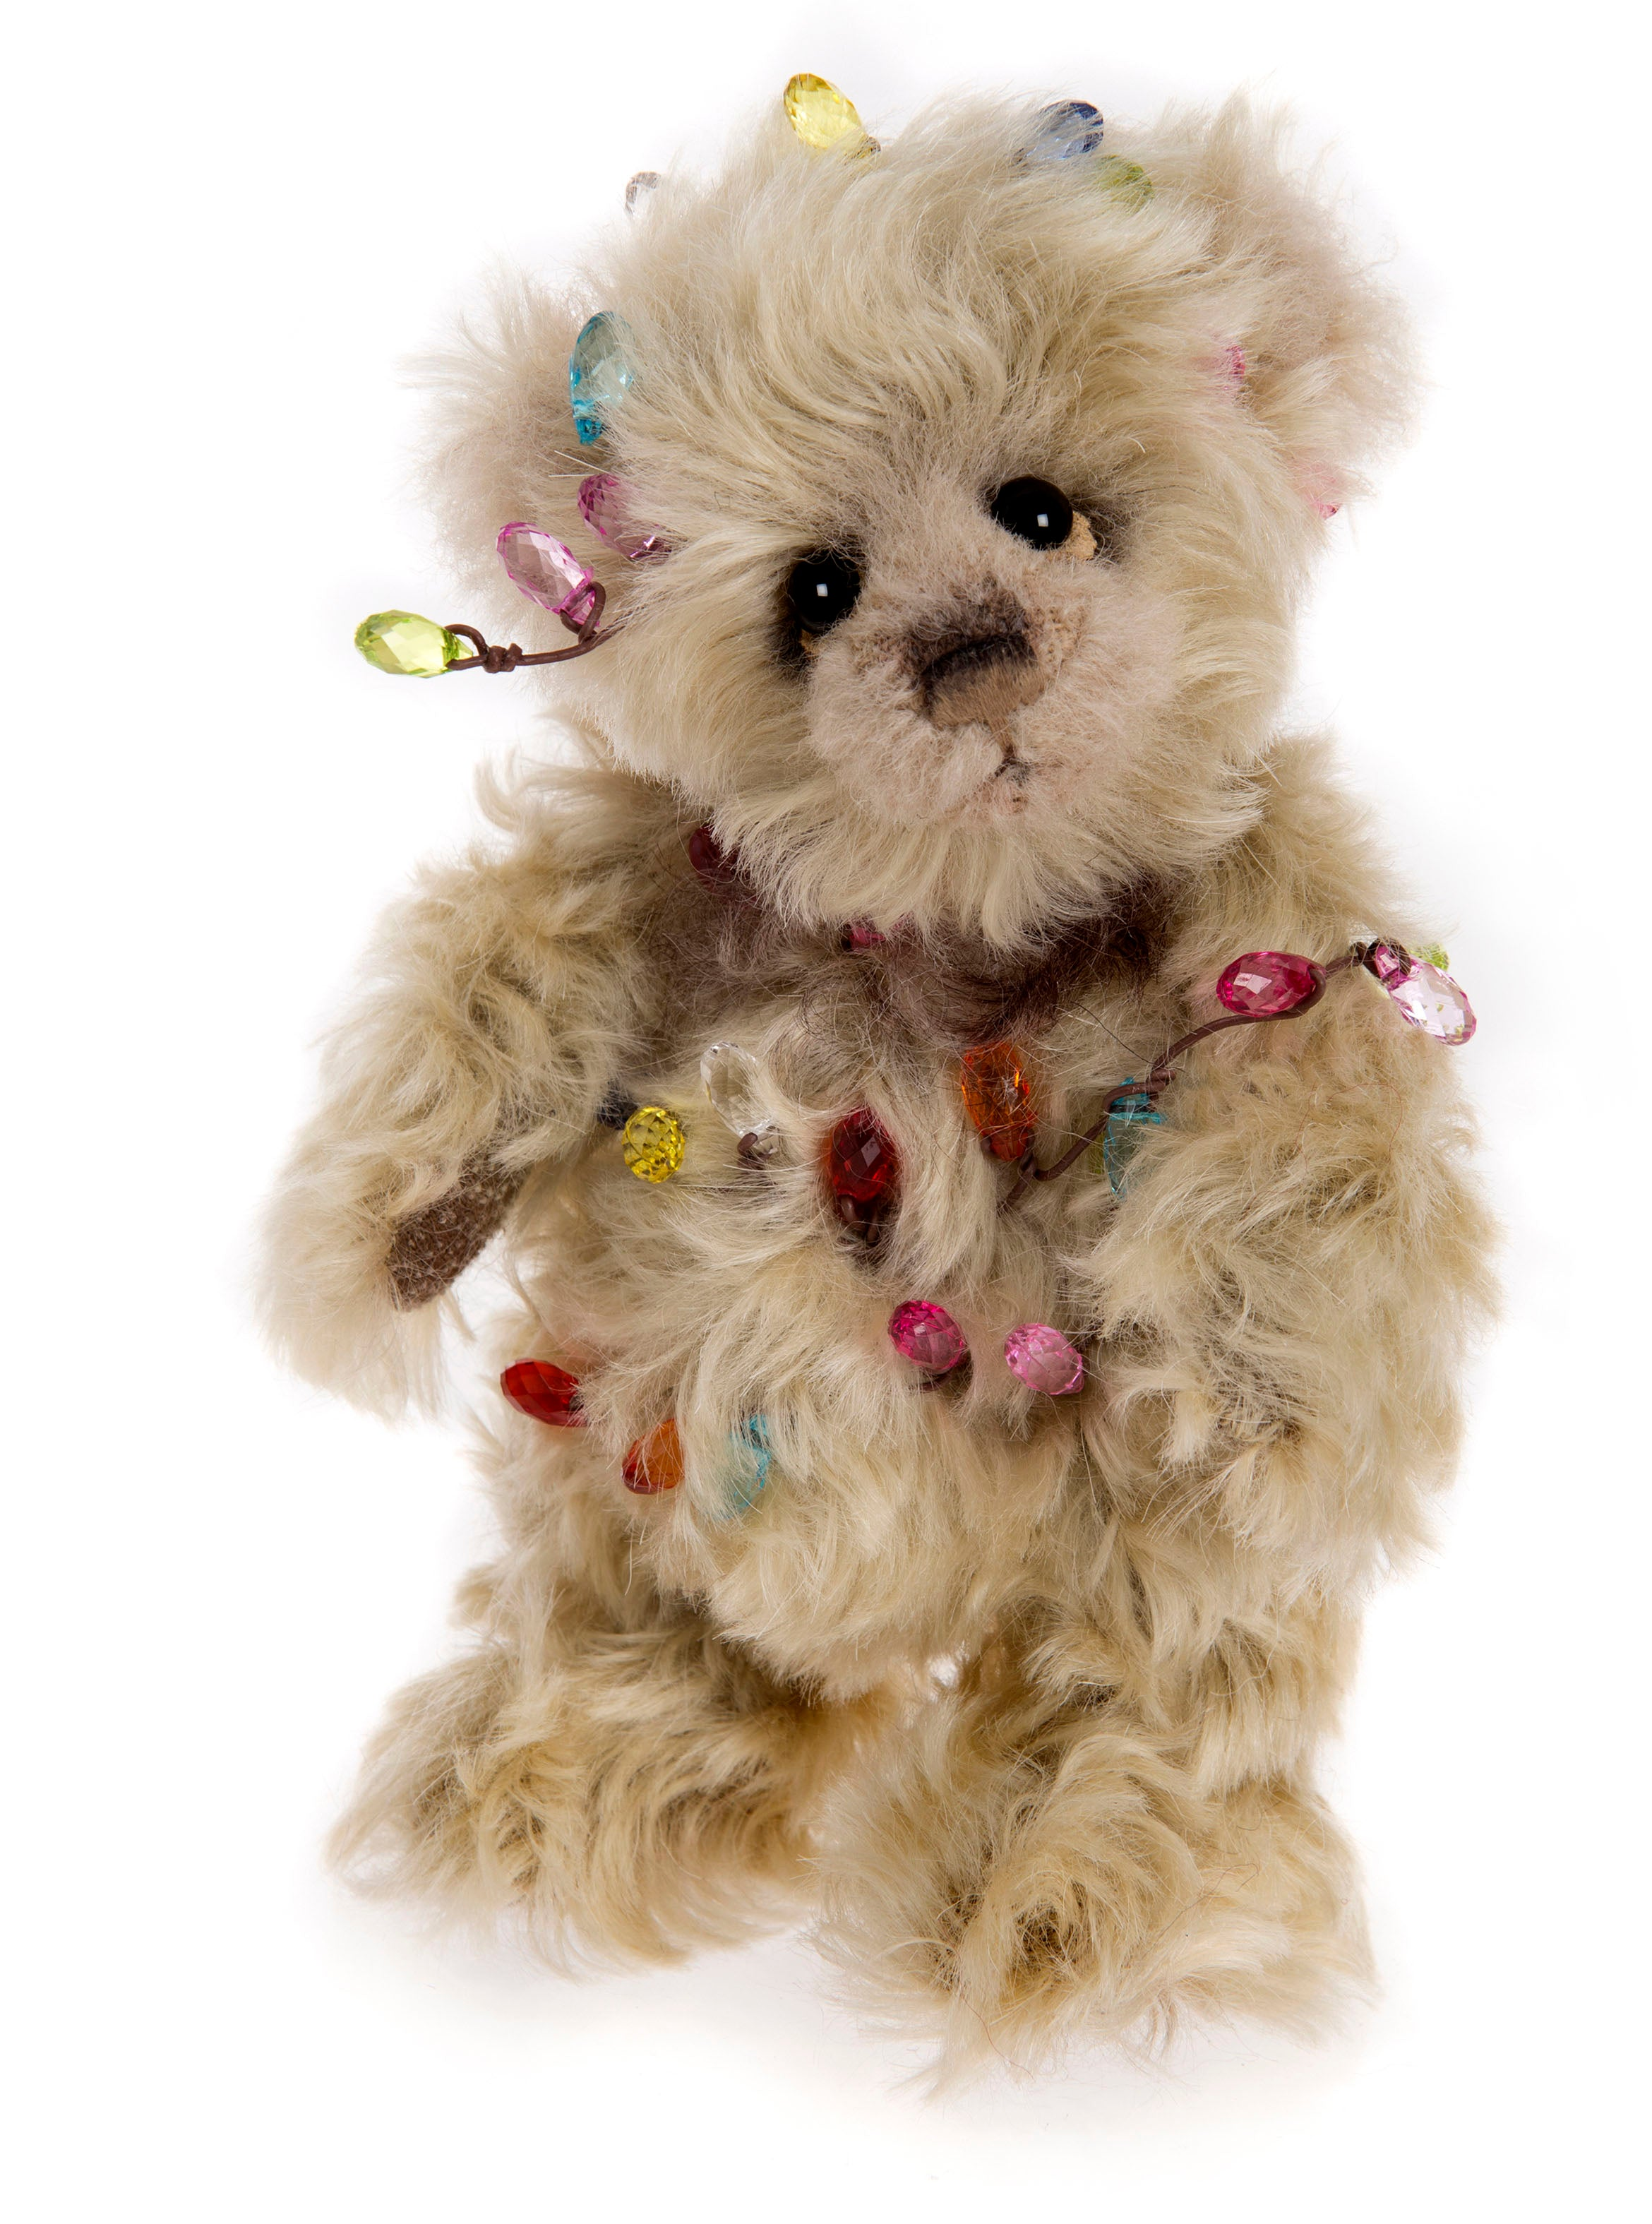 Fairy Lights Mini Teddy Bear - Charlie Bears